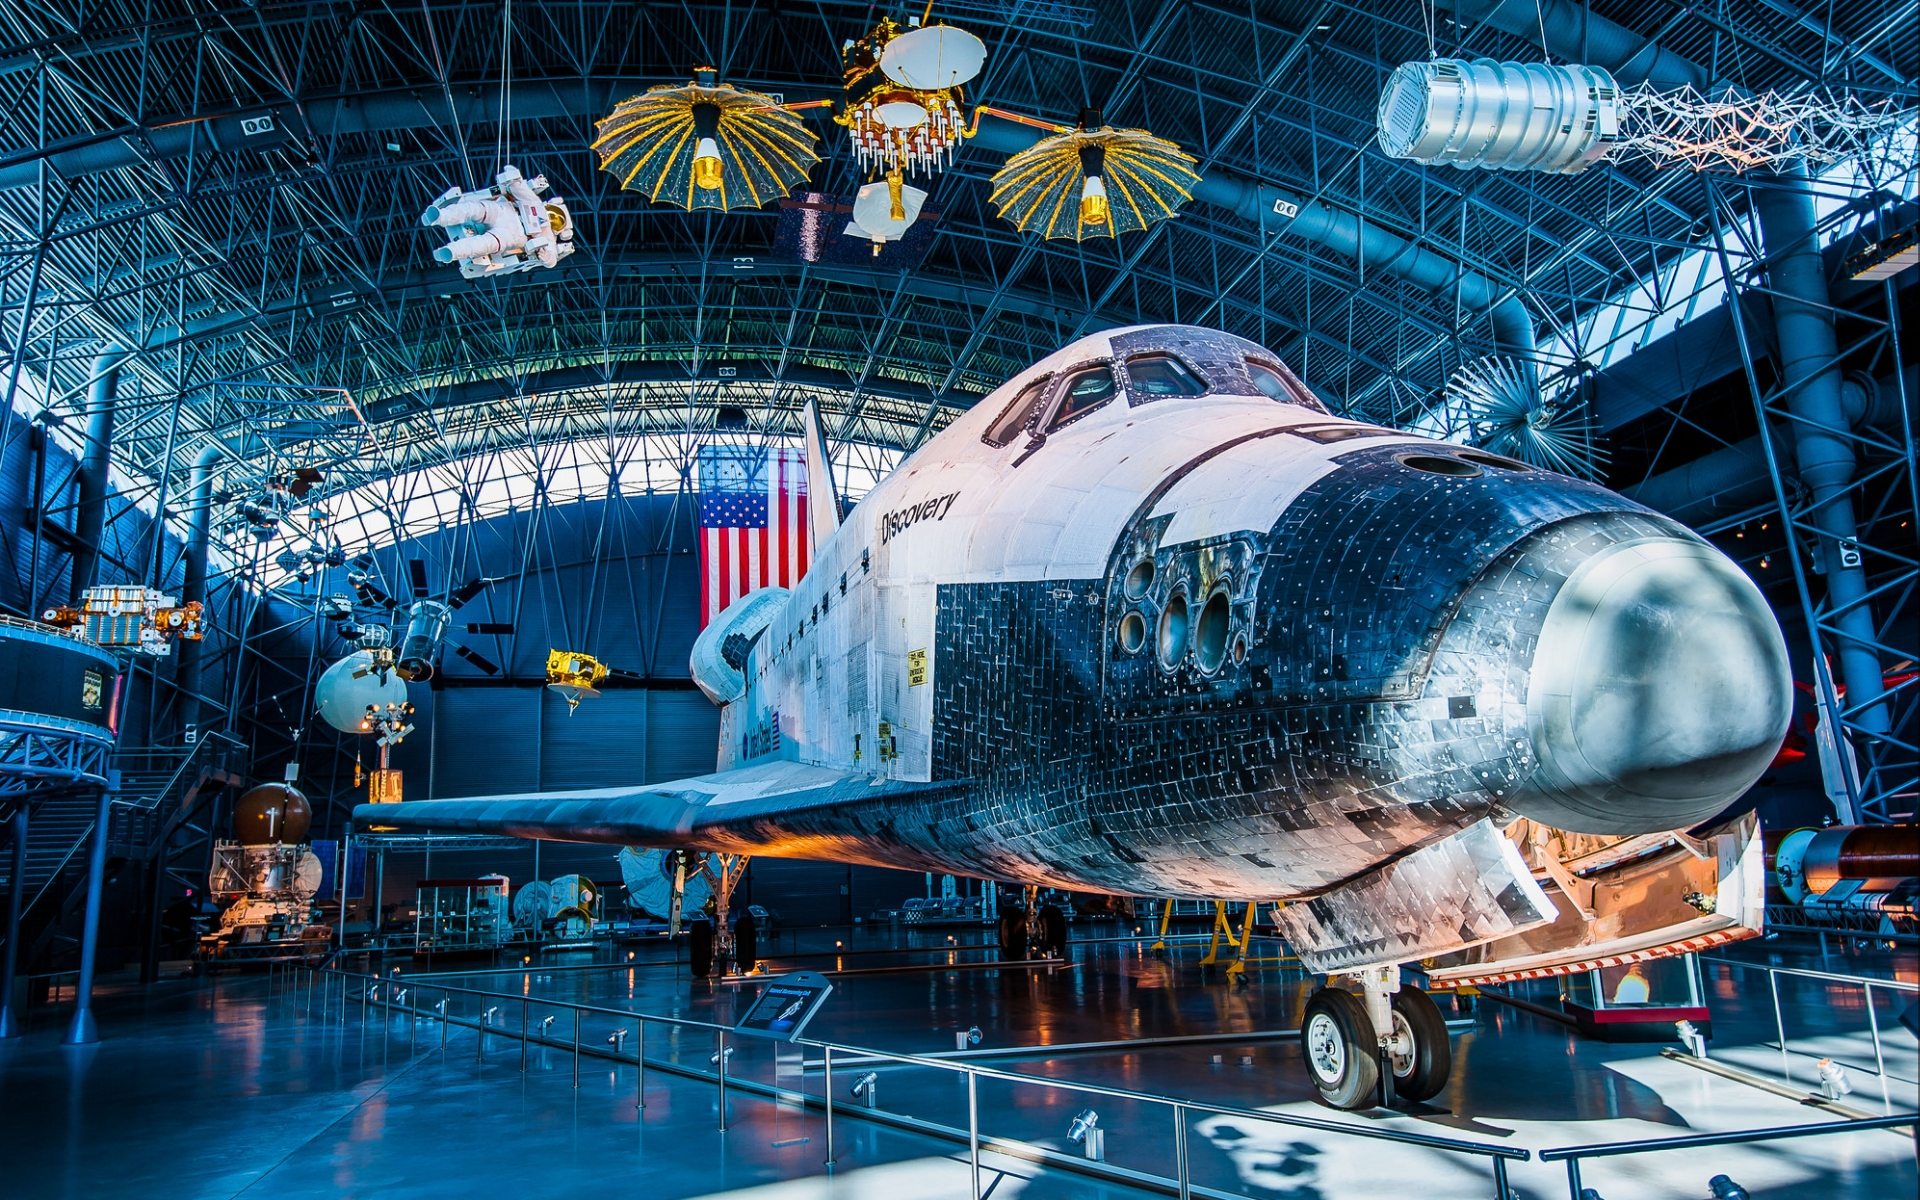 space shuttle discovery wallpaper - photo #23